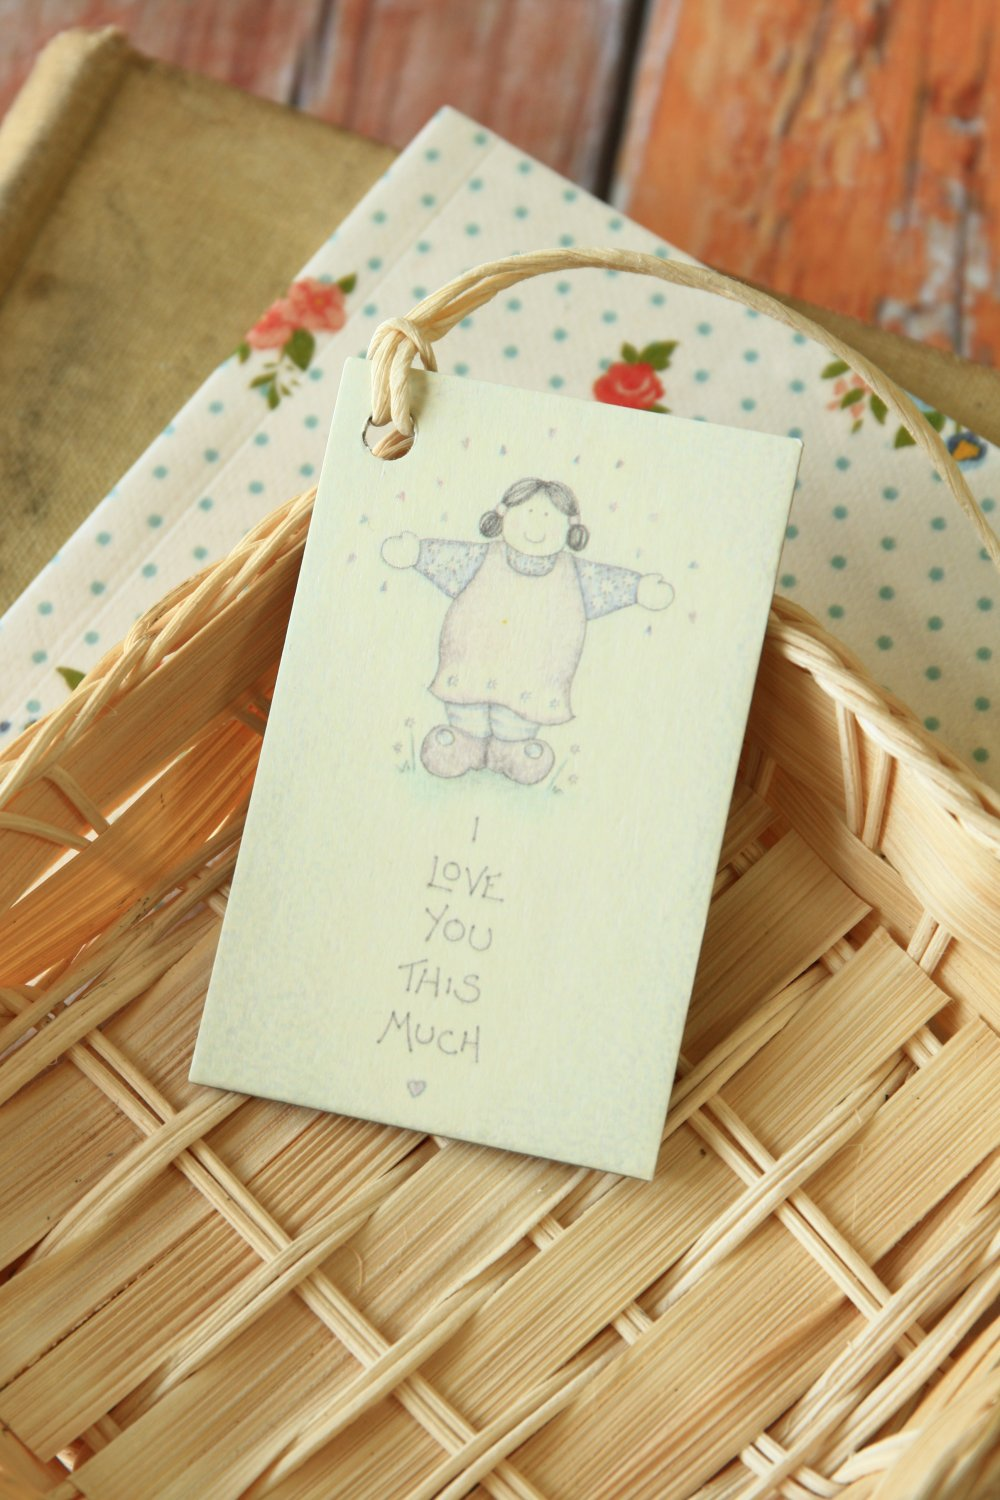 I Love You East of India printed gift tags